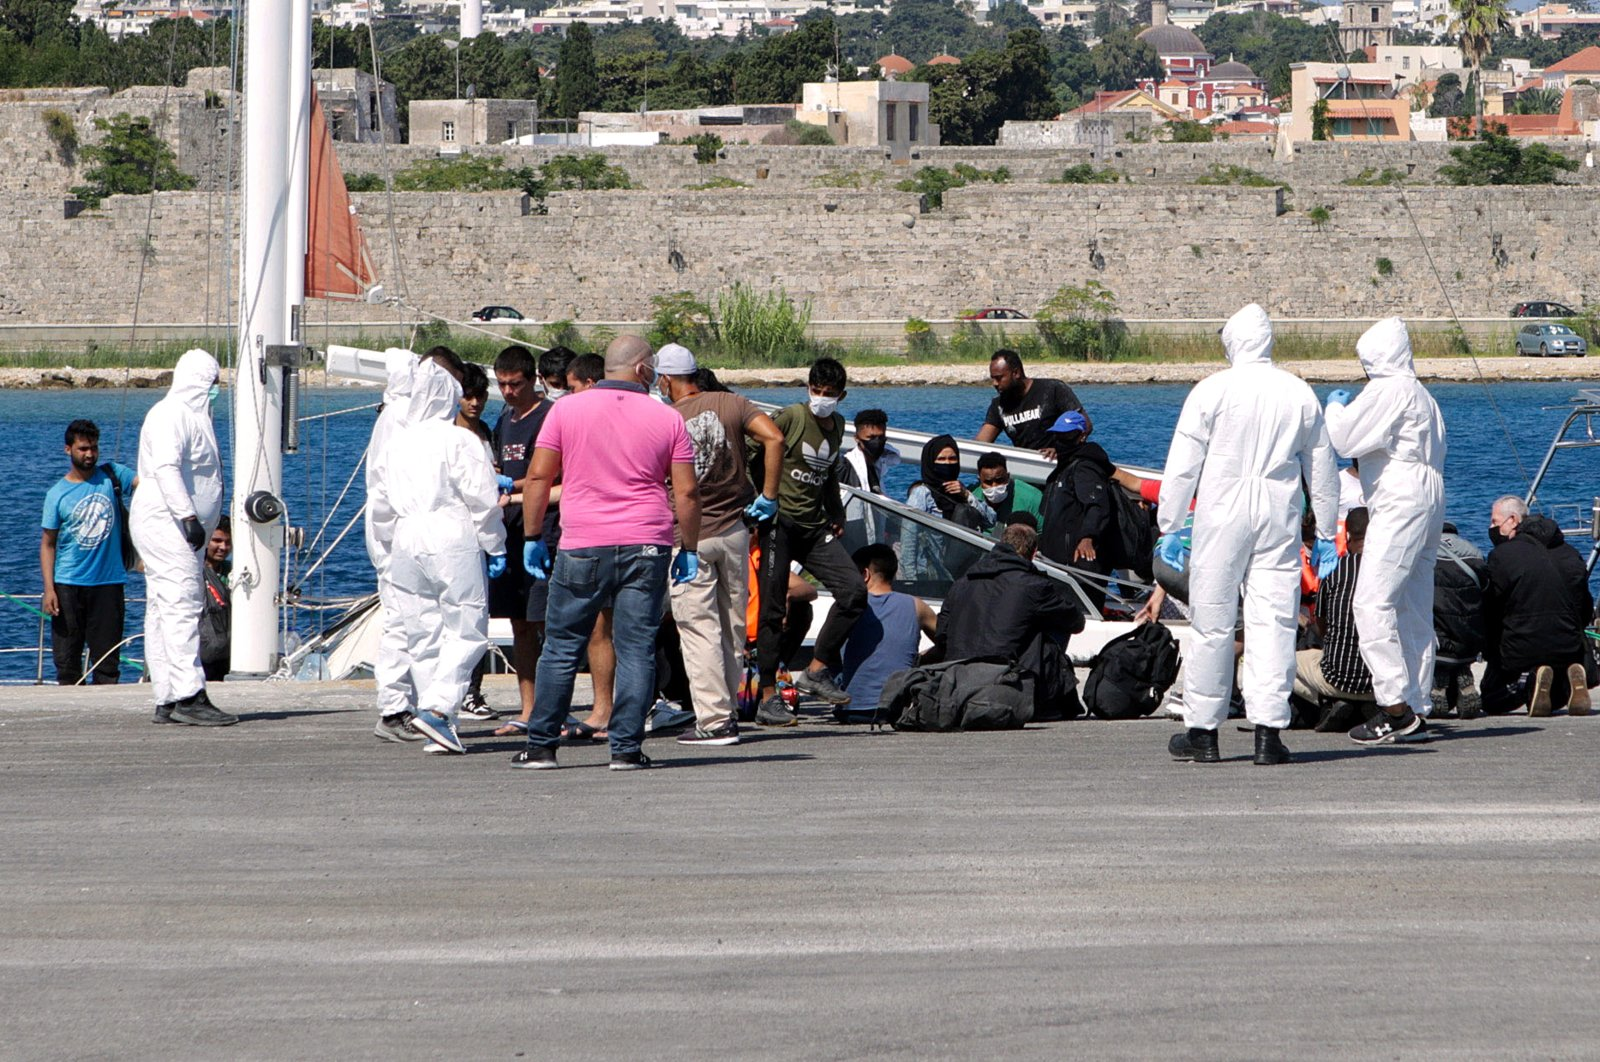 Healthcare professionals in protective suits make tests for COVID-19 to migrants at the port of Rhodes Island, Dodecanese, Greece, 28 August 2020. (EPA Photo)